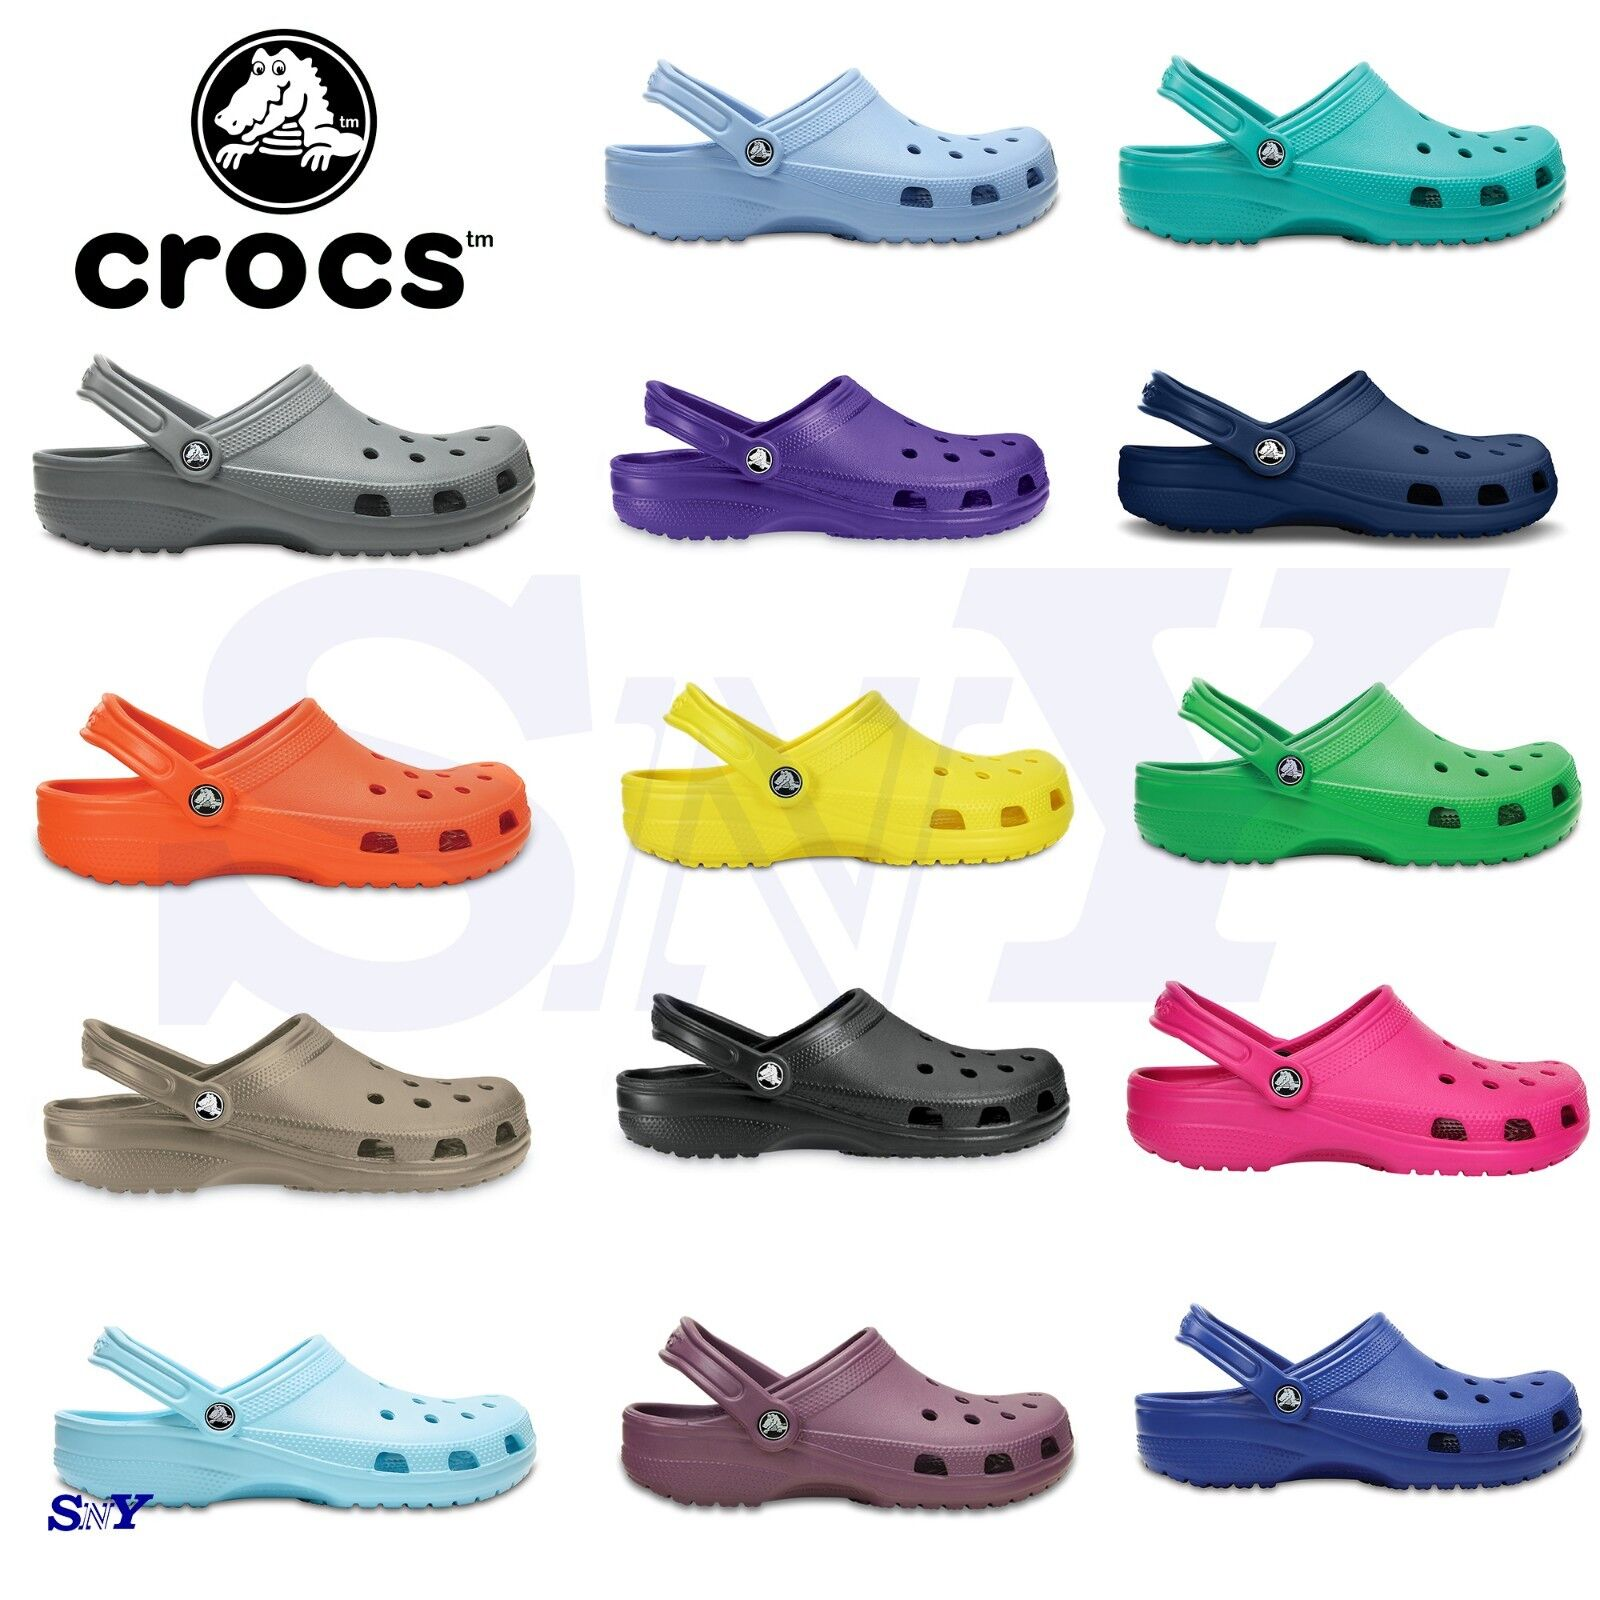 CROCS Classic UNISEX Men's Women's Ultra Light Water-Friendl